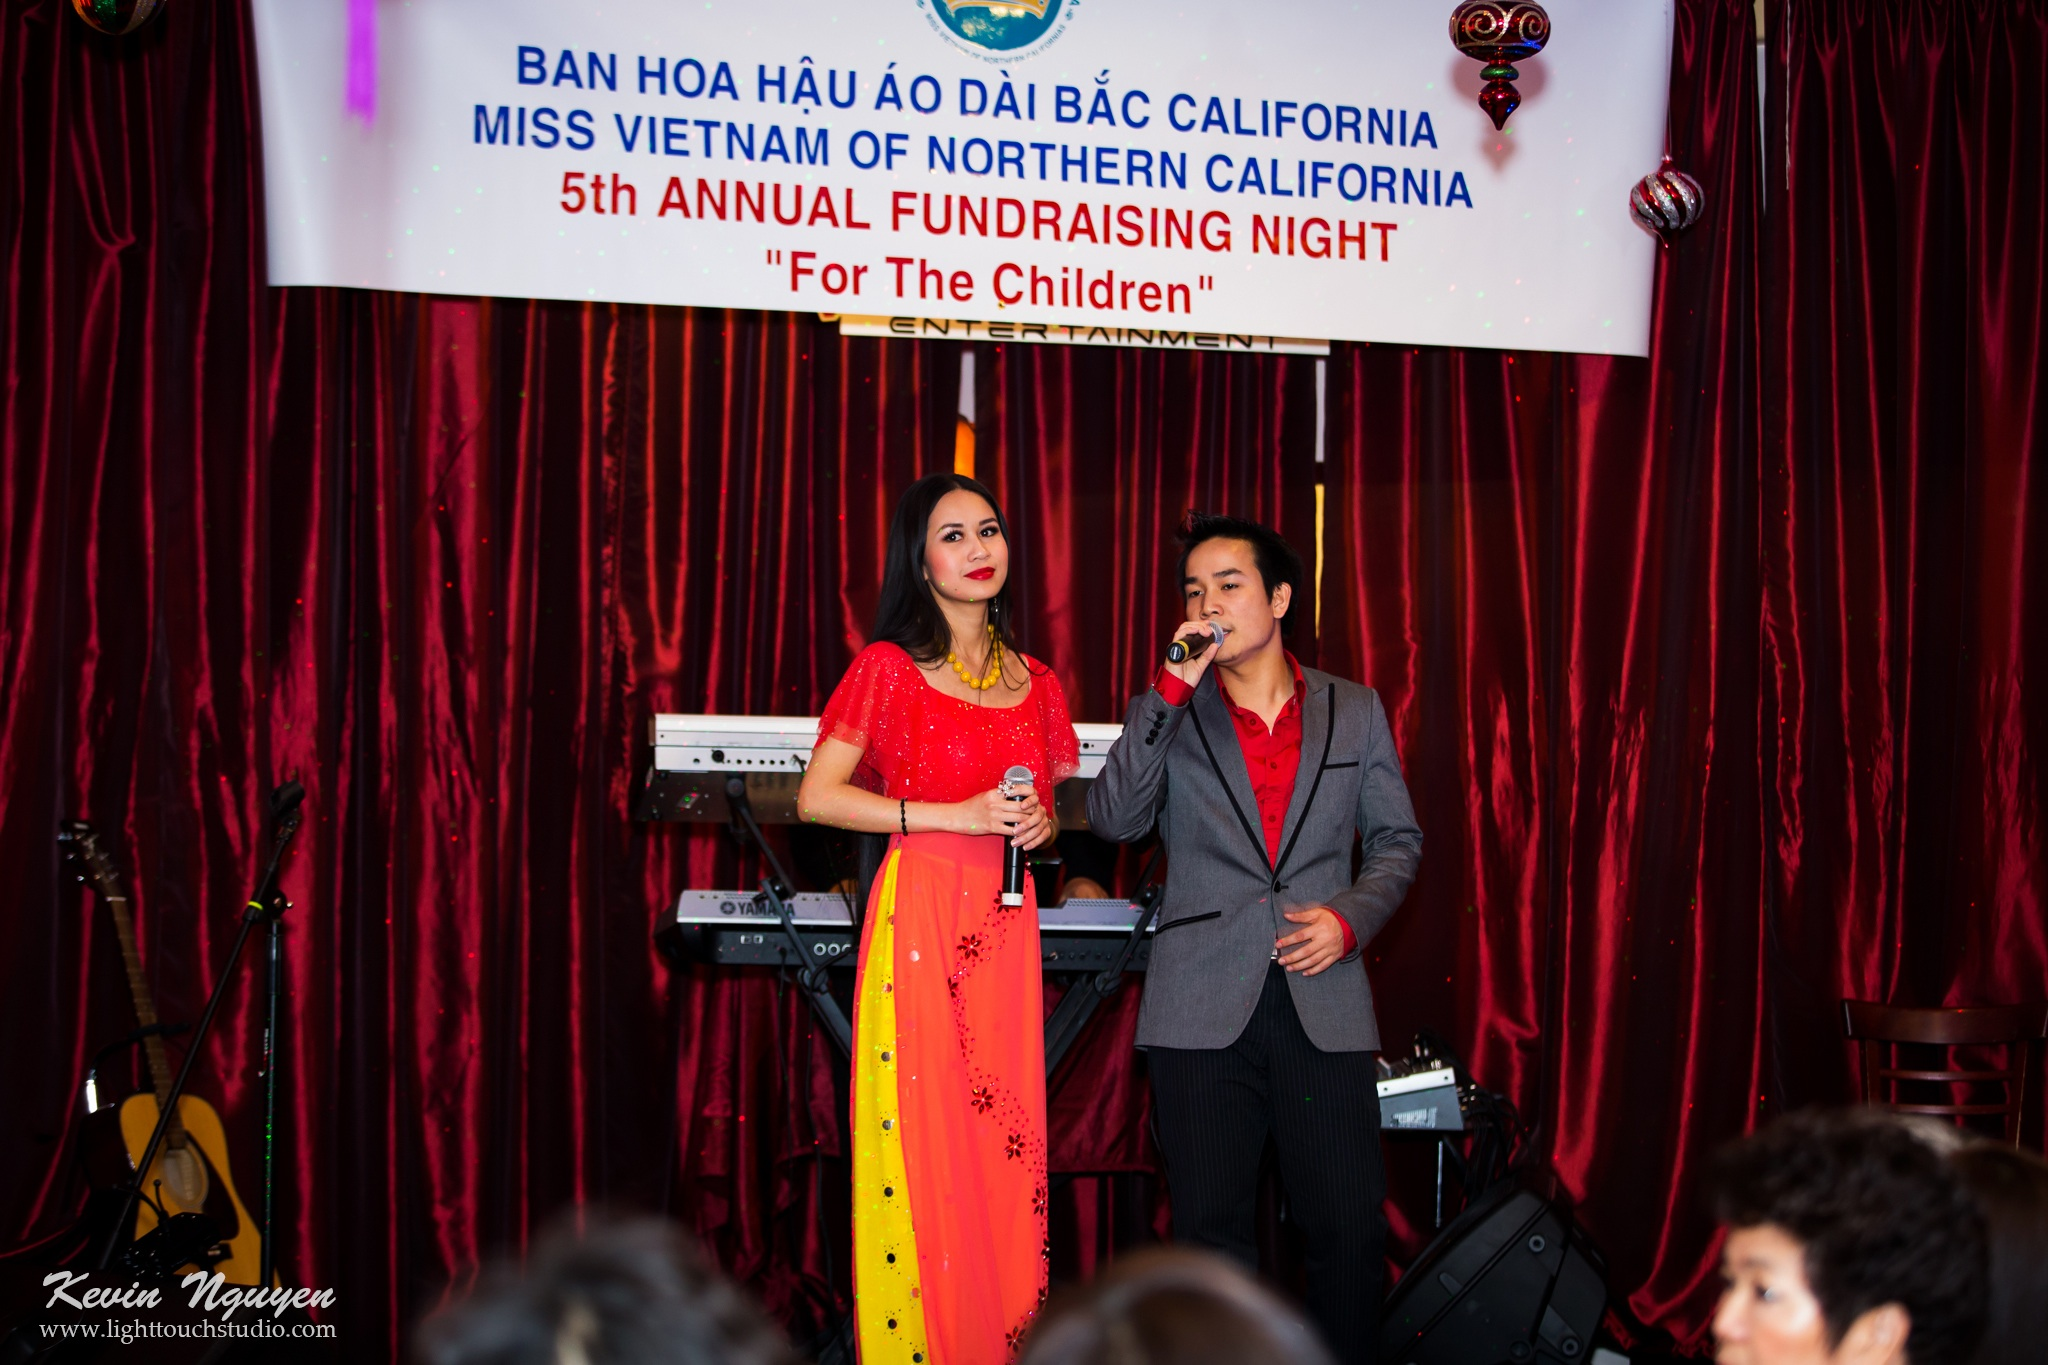 Charity Fundraiser 2012 - For the Children - Paloma, San Jose - Image 087